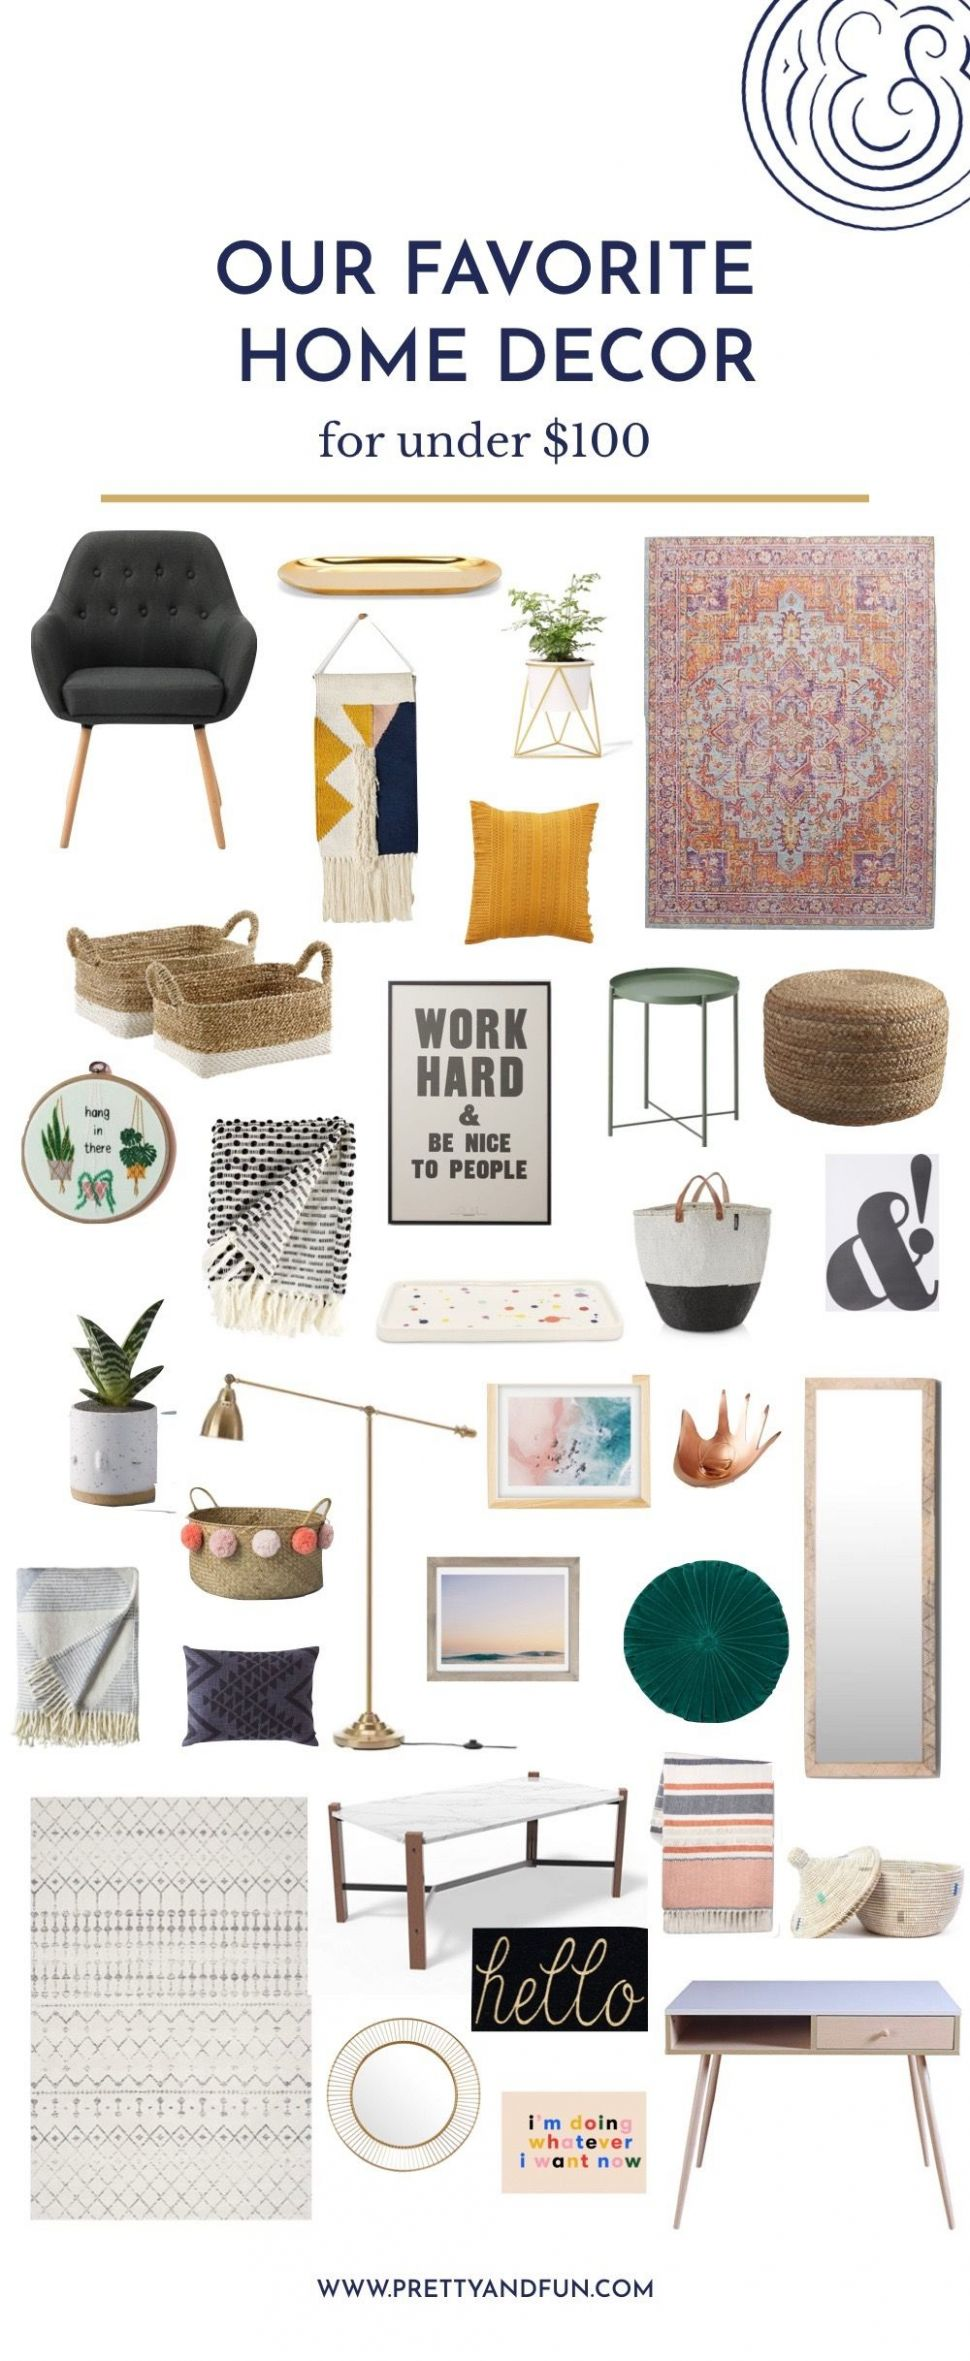 Our Favorite Home Decor Under $12 | Home decor, Decor, Home - home decor under 100